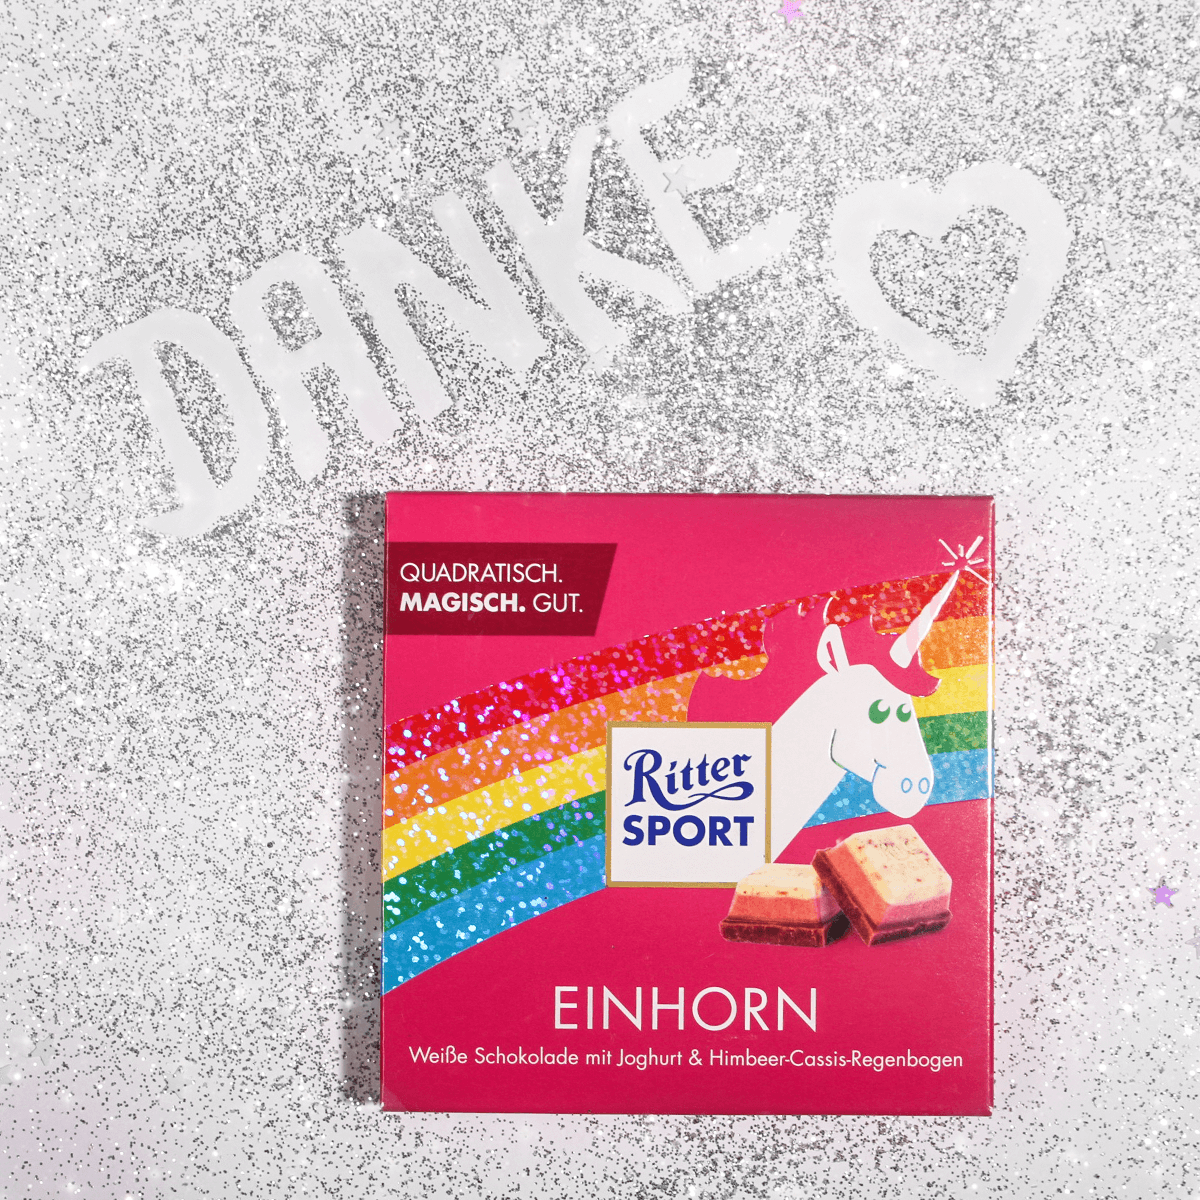 RS_Limited-Edition_Einhorn_Danke